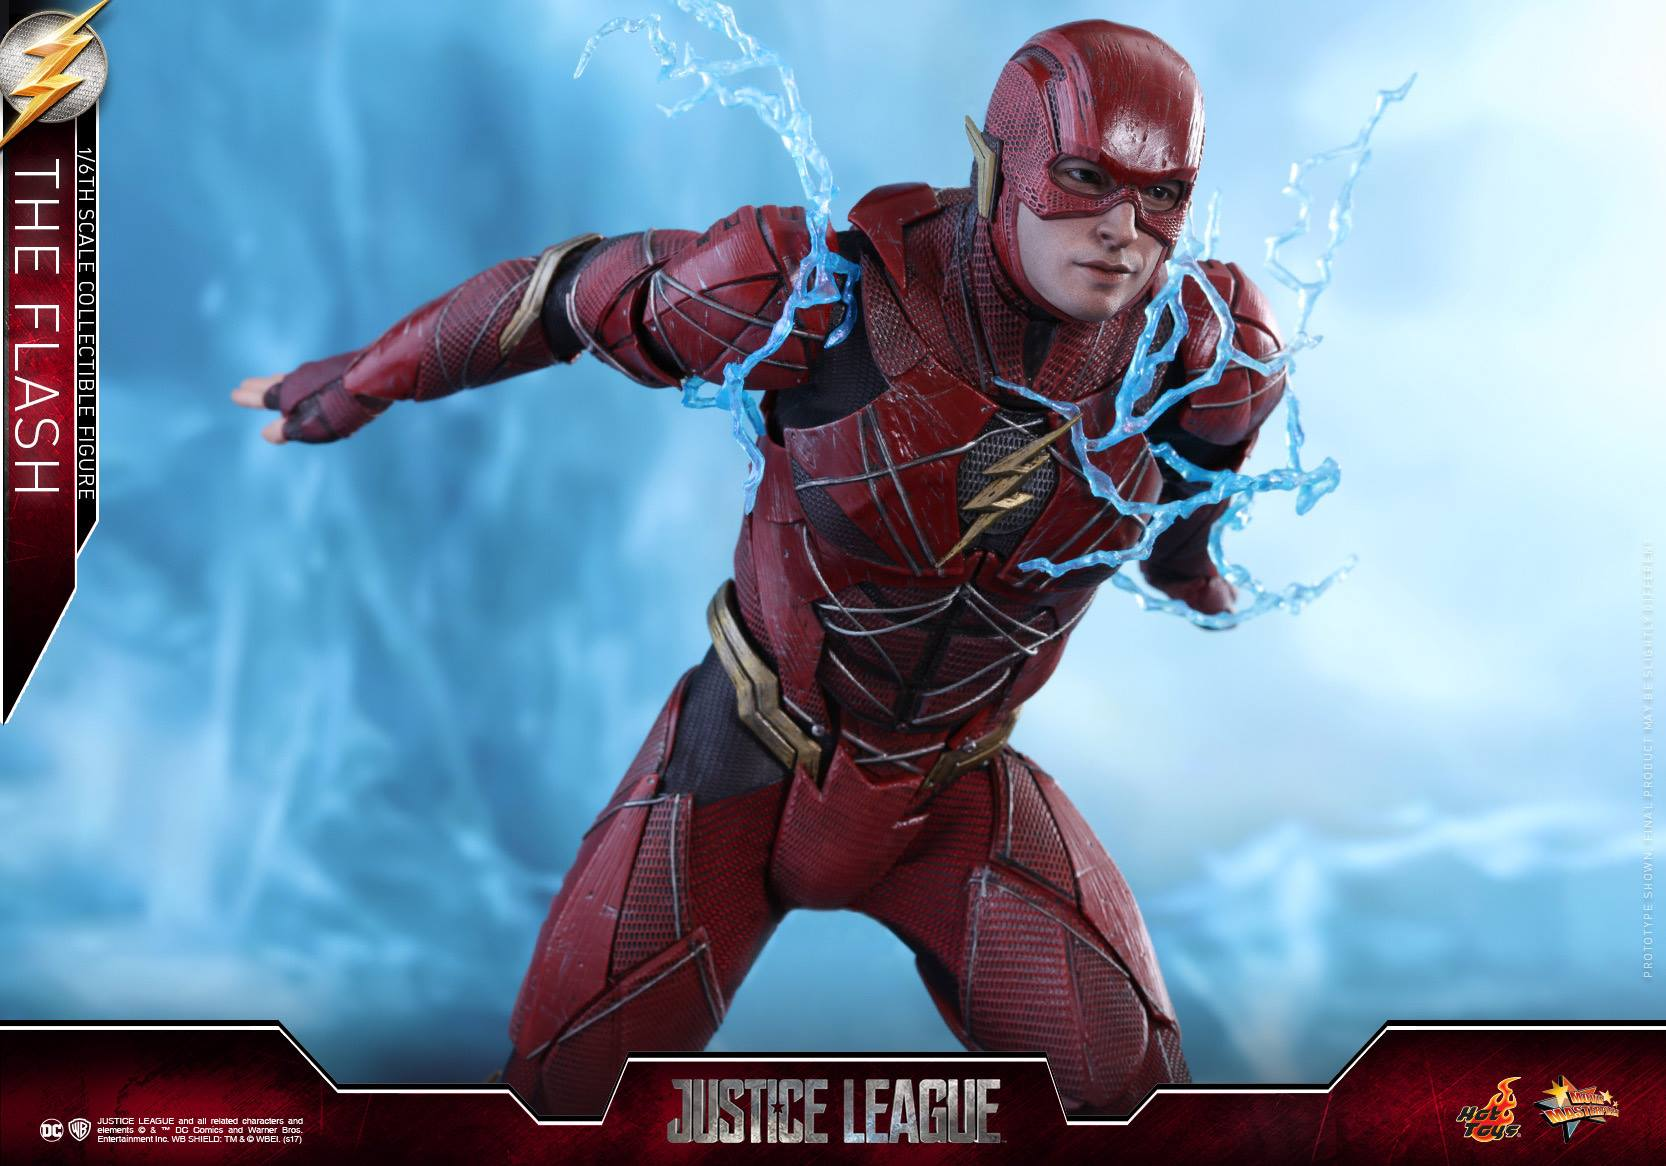 Hot-Toys-Justice-League-The-Flash-016